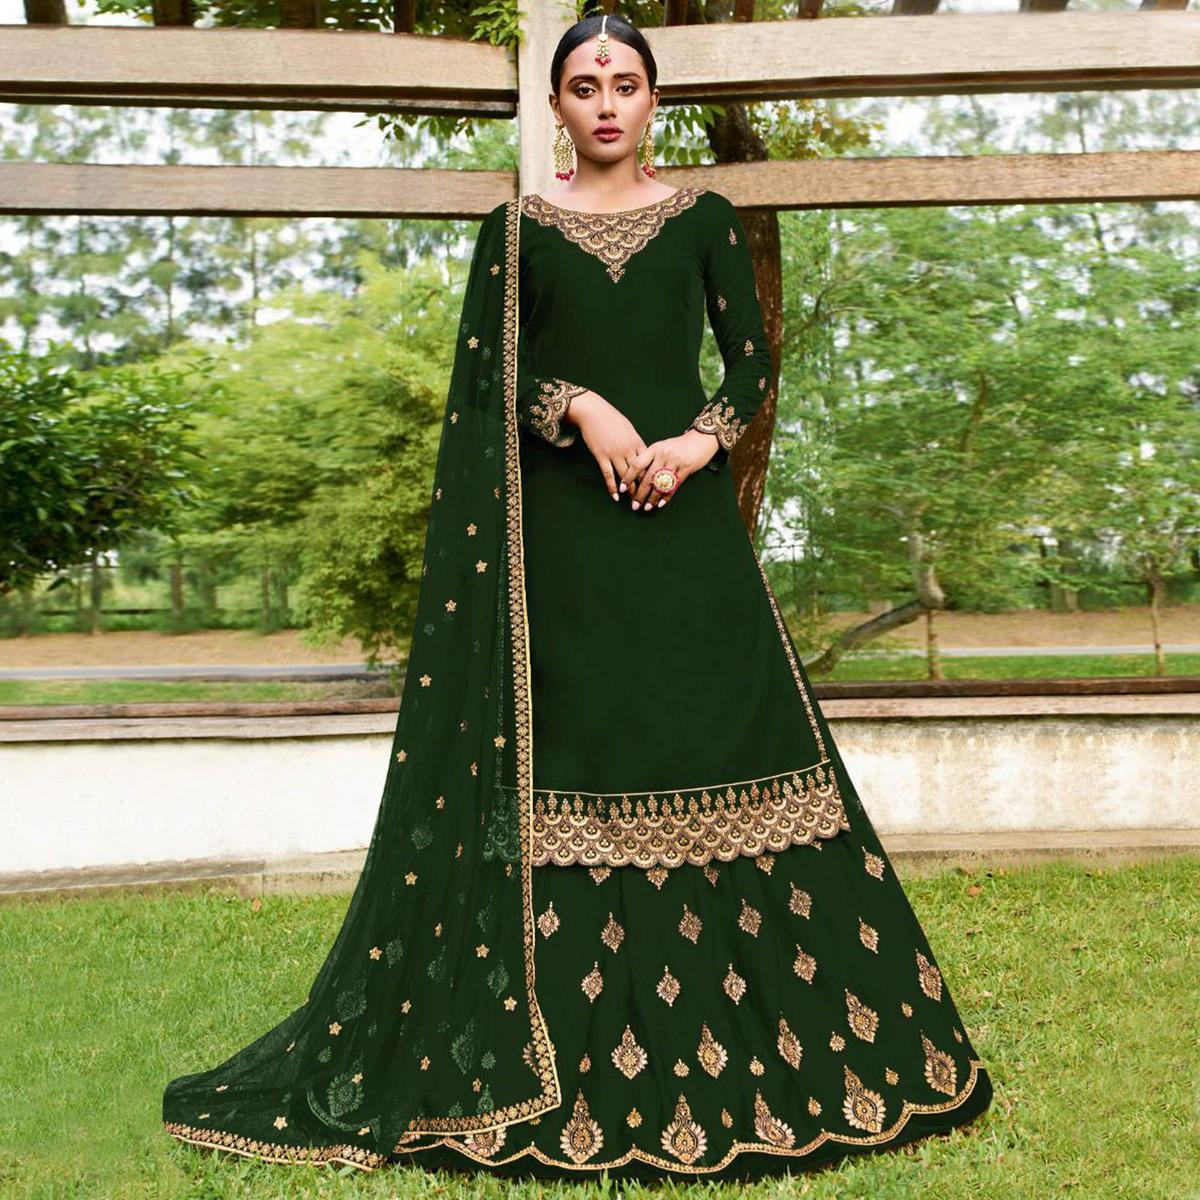 Intricate Green Colored Party Wear Emroidered Faux Georgette Lehenga Kameez